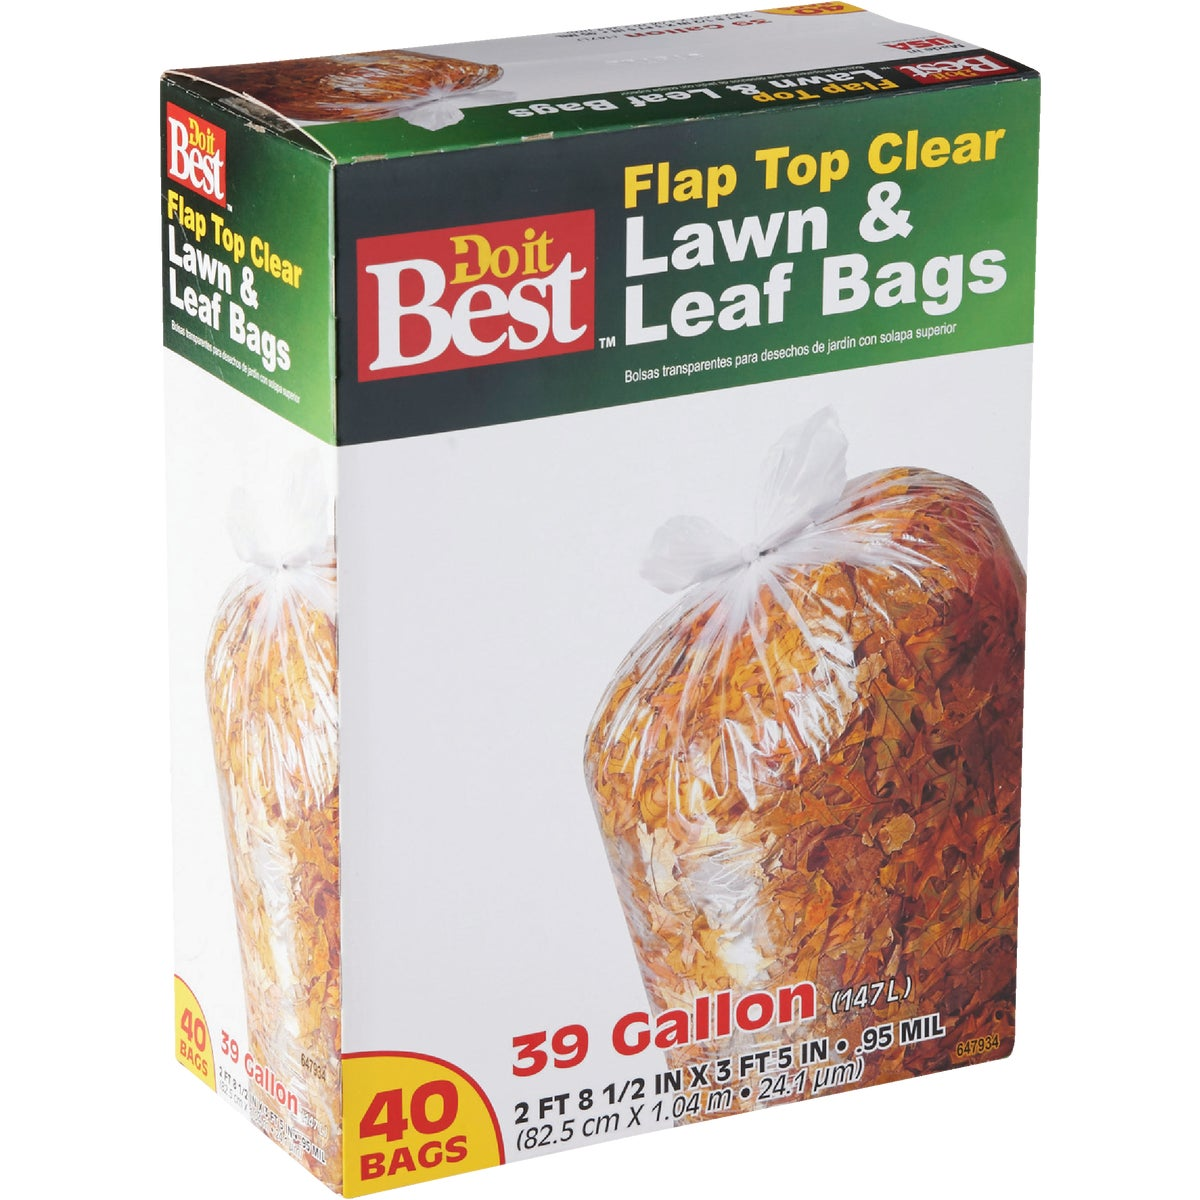 39GAL/40CT LAWN/LEAF BAG - 647934 by Presto Products